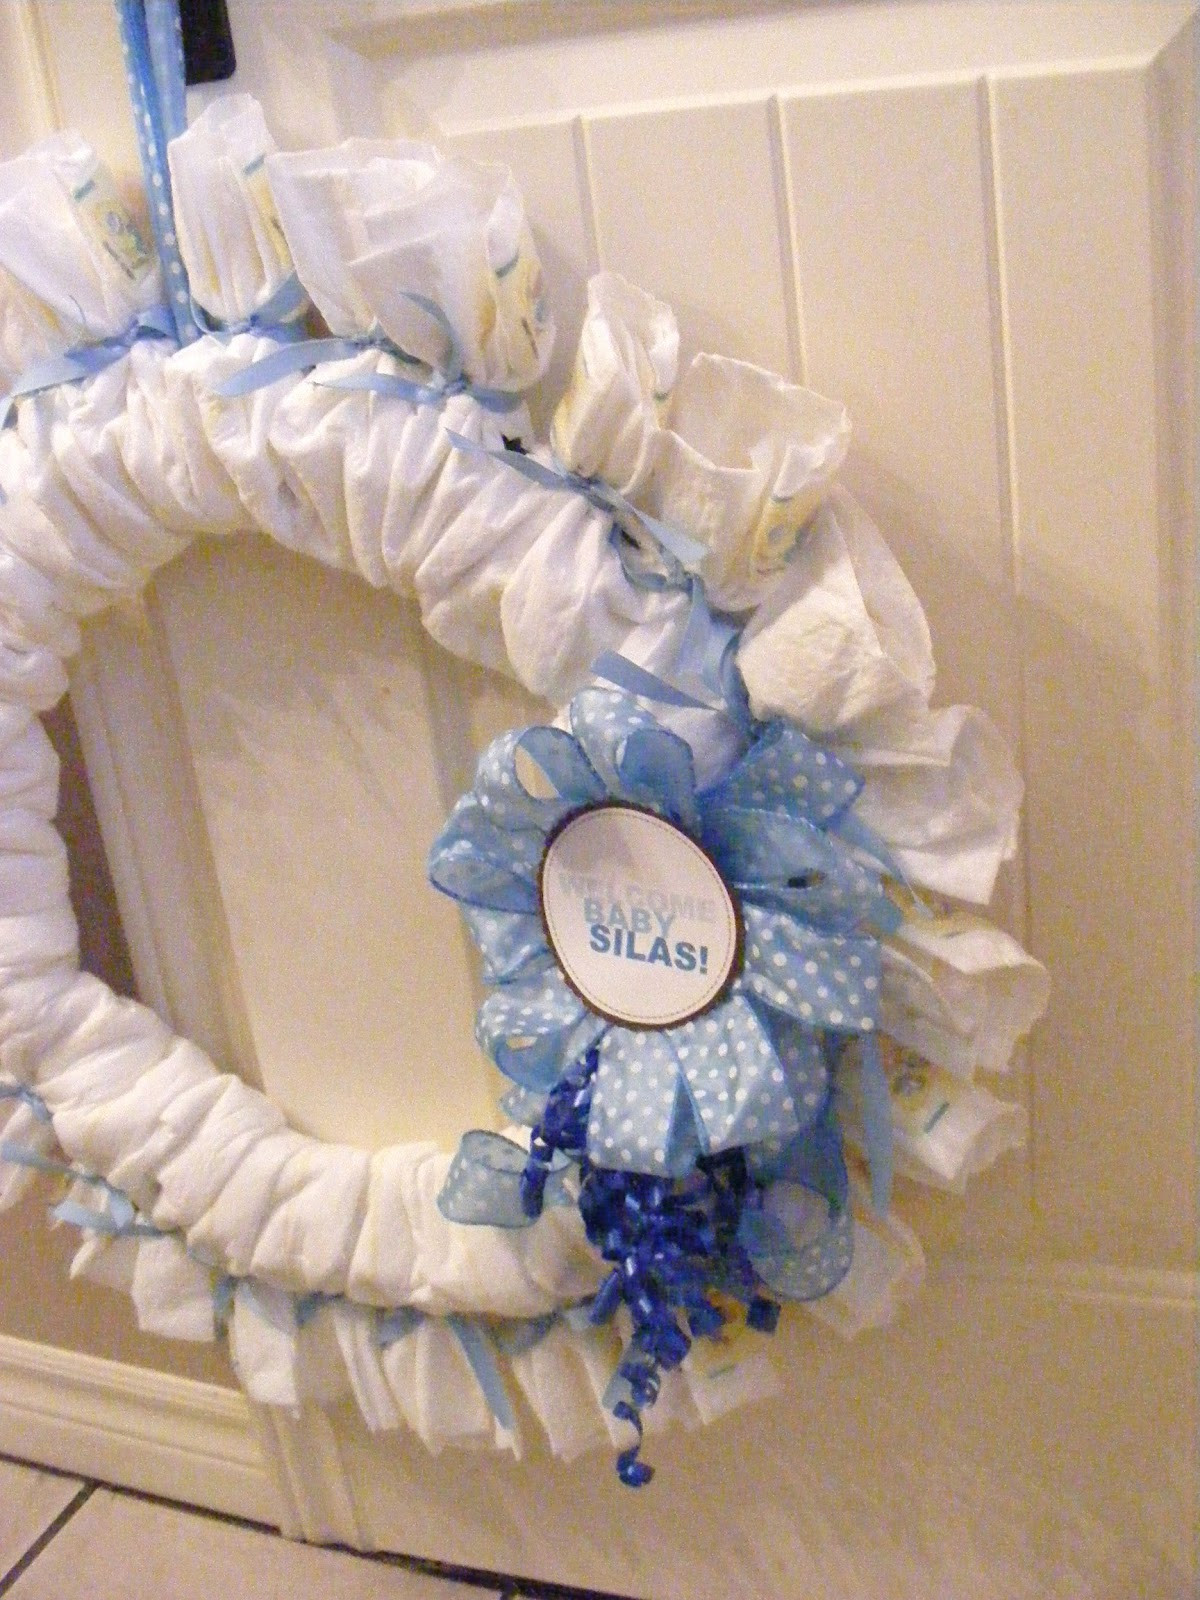 Best ideas about Baby Shower Wreath DIY . Save or Pin A Baby Shower Diaper Wreath Now.